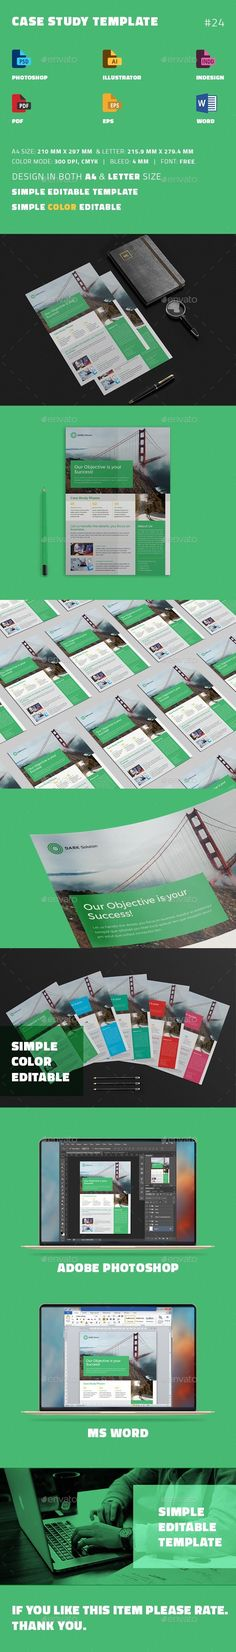 Case Study Template | Flyer - Newsletters Print Templates Download here : https://graphicriver.net/item/case-study-template-flyer/19405218?s_rank=3&ref=Al-fatih